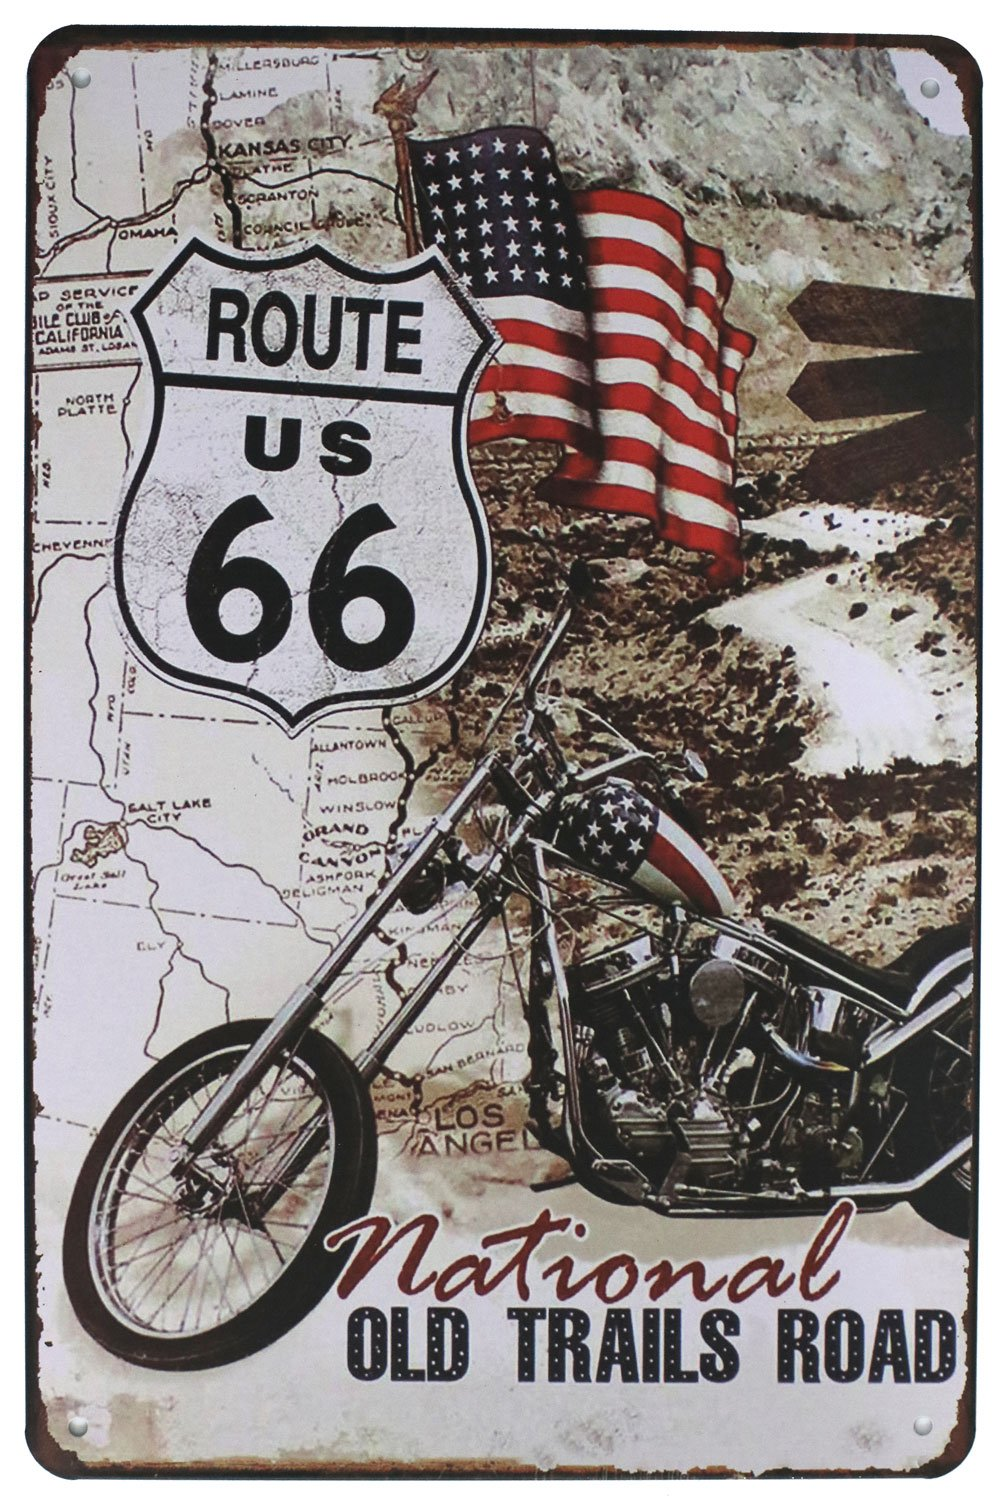 CDM product Sumik The National Old Trails Road Route US 66 Motorcycle, Metal Tin Sign, Vintage Plaque Art Poster Garage Living Room Home Wall Decor(Ship From Canada) big image